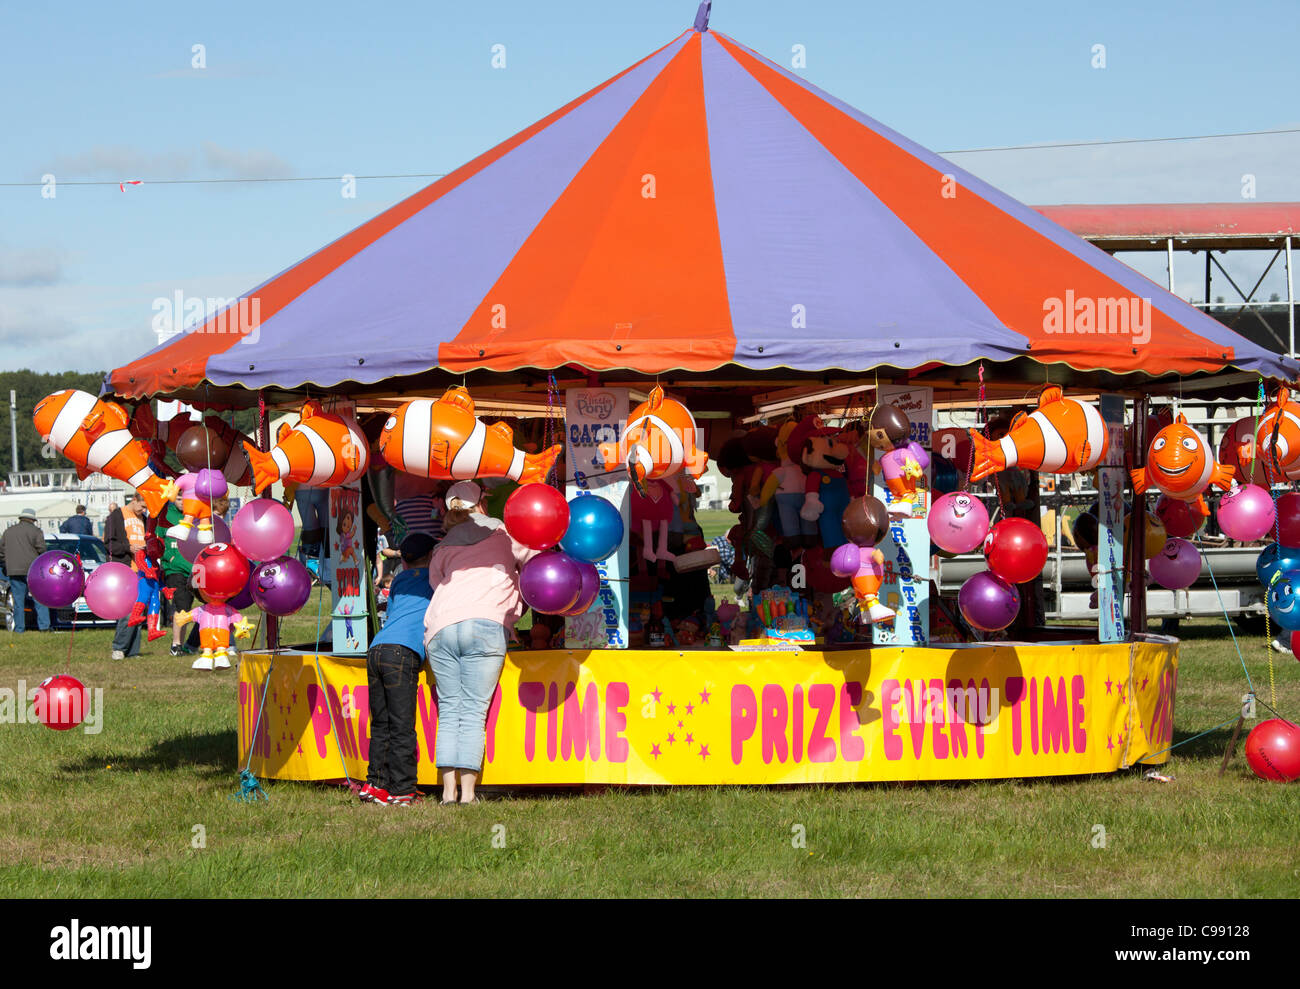 Prize every time stall at Dunsfold Wings and Wheels 2011, Surrey, UK - Stock Image